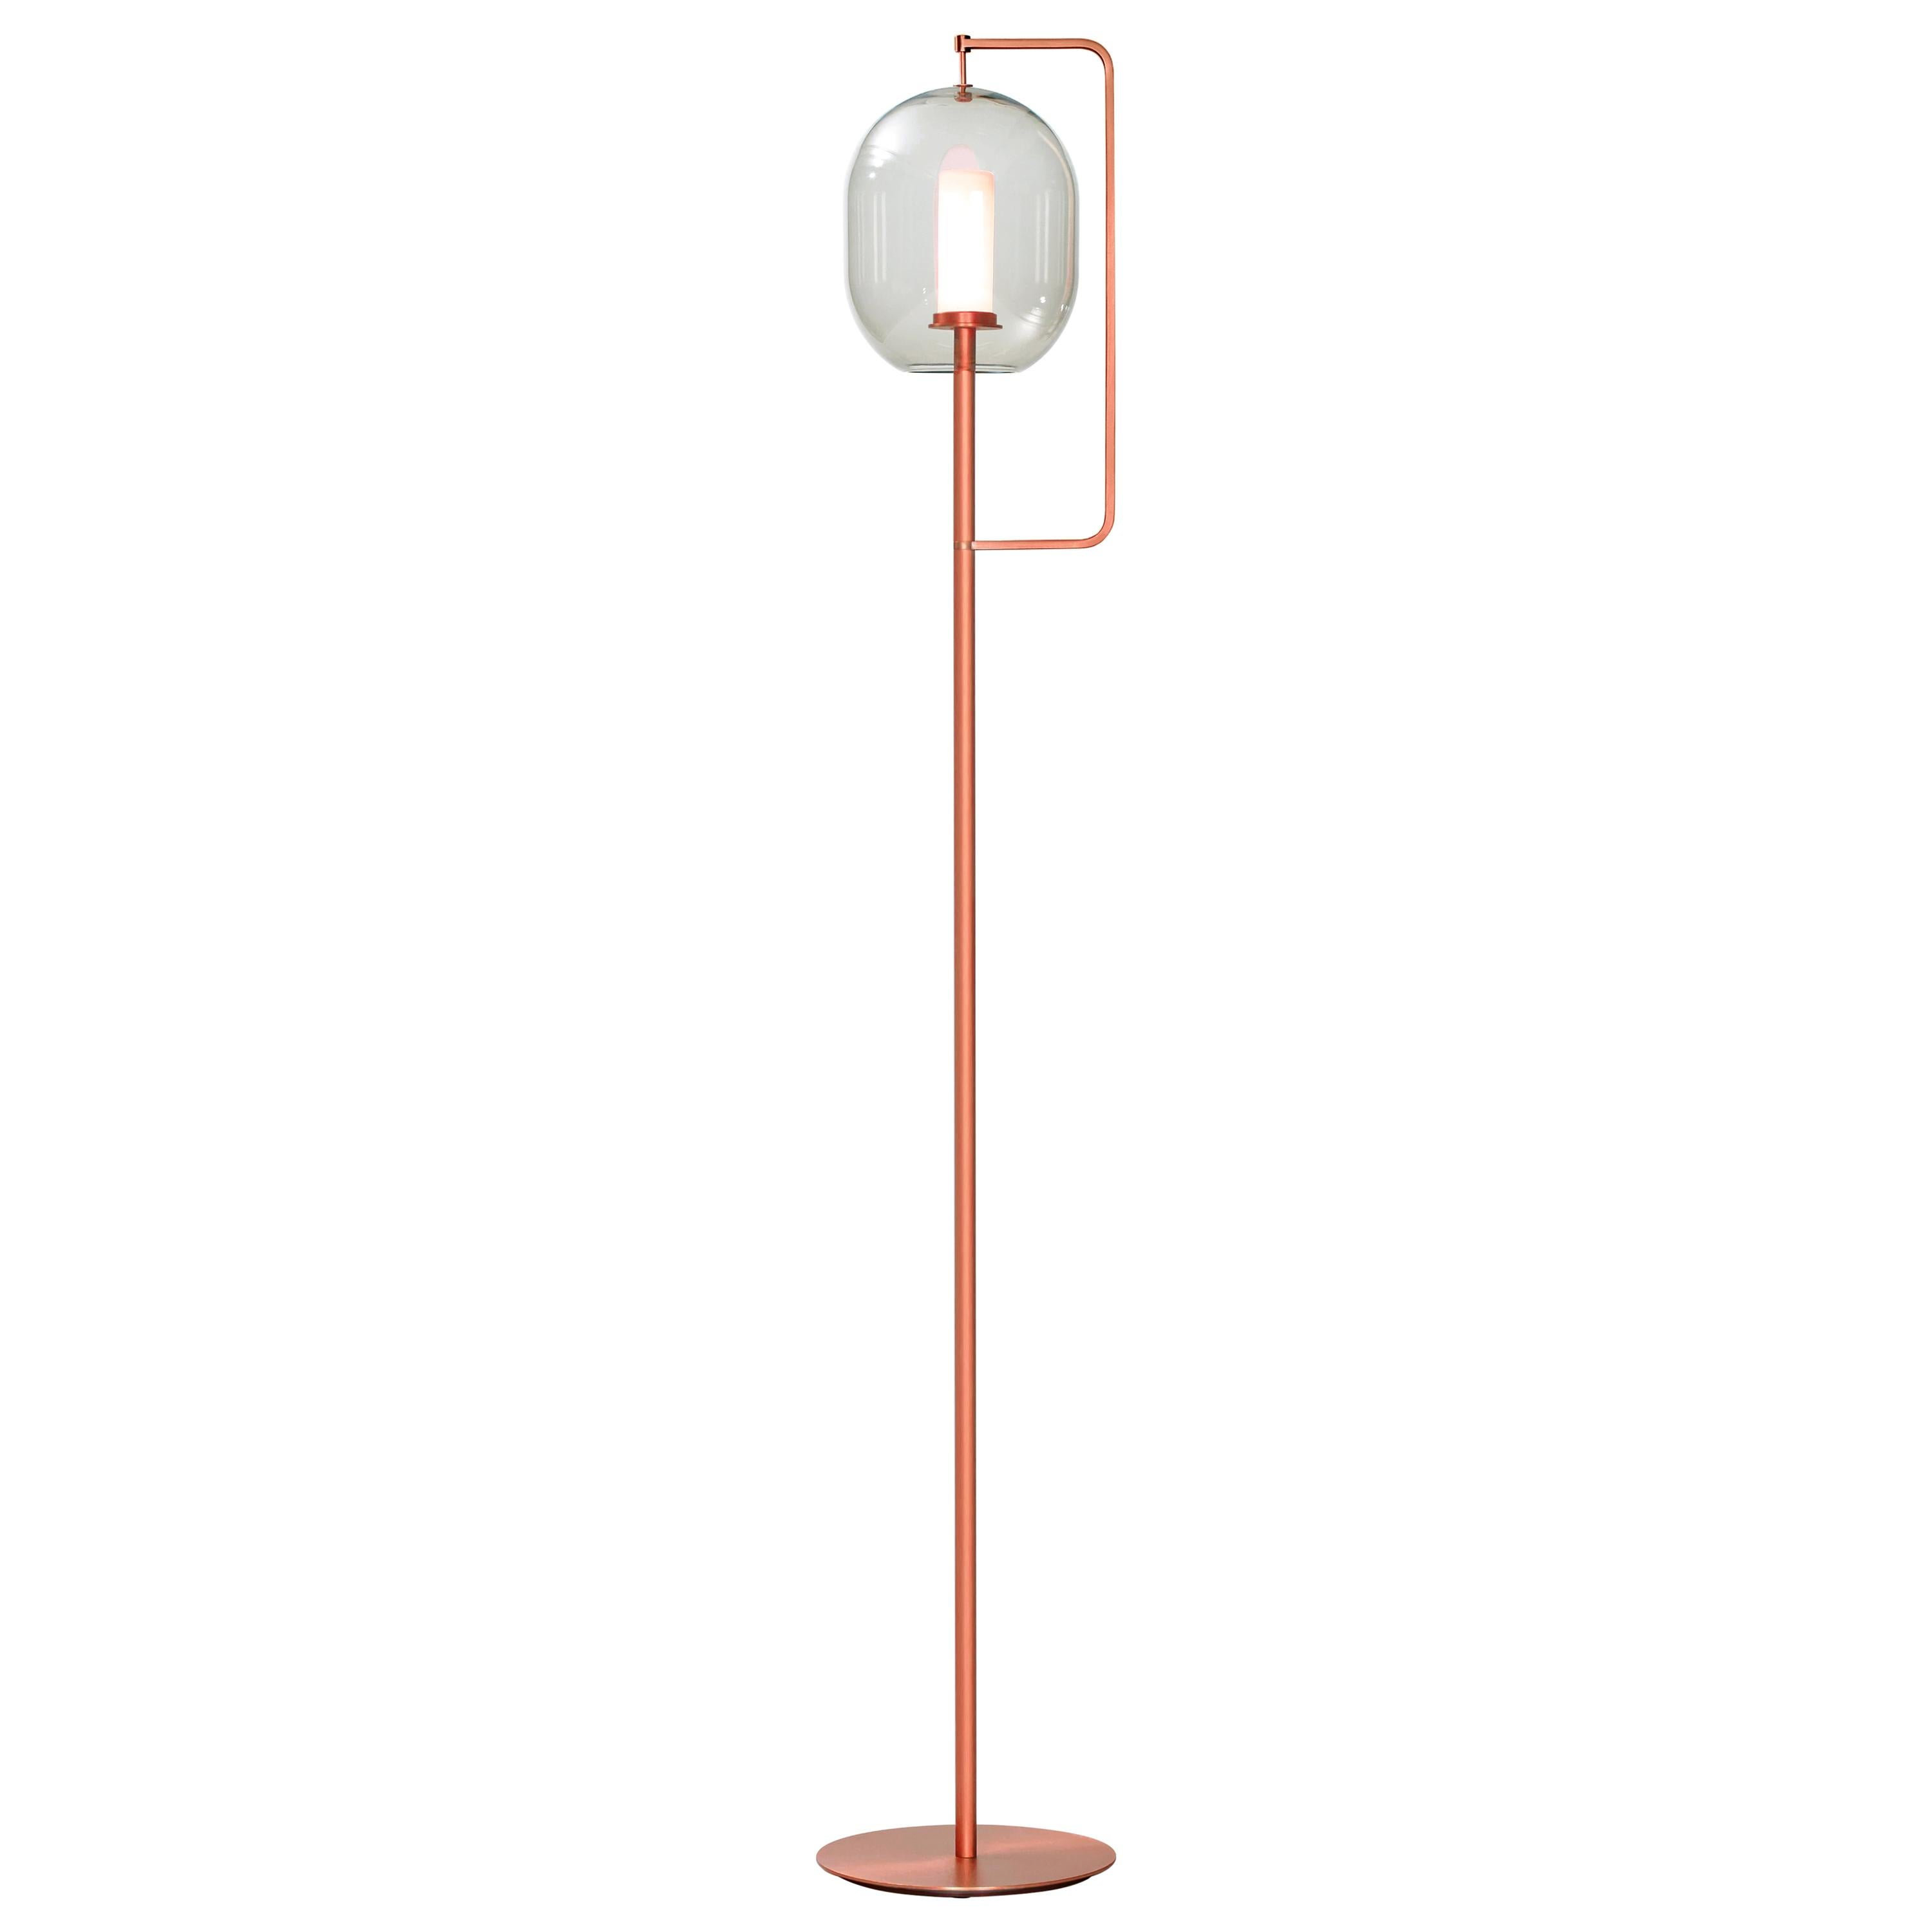 ClassiCon Lantern Light Tall Floor Lamp in Copper-Plated Brass by Neri&Hu